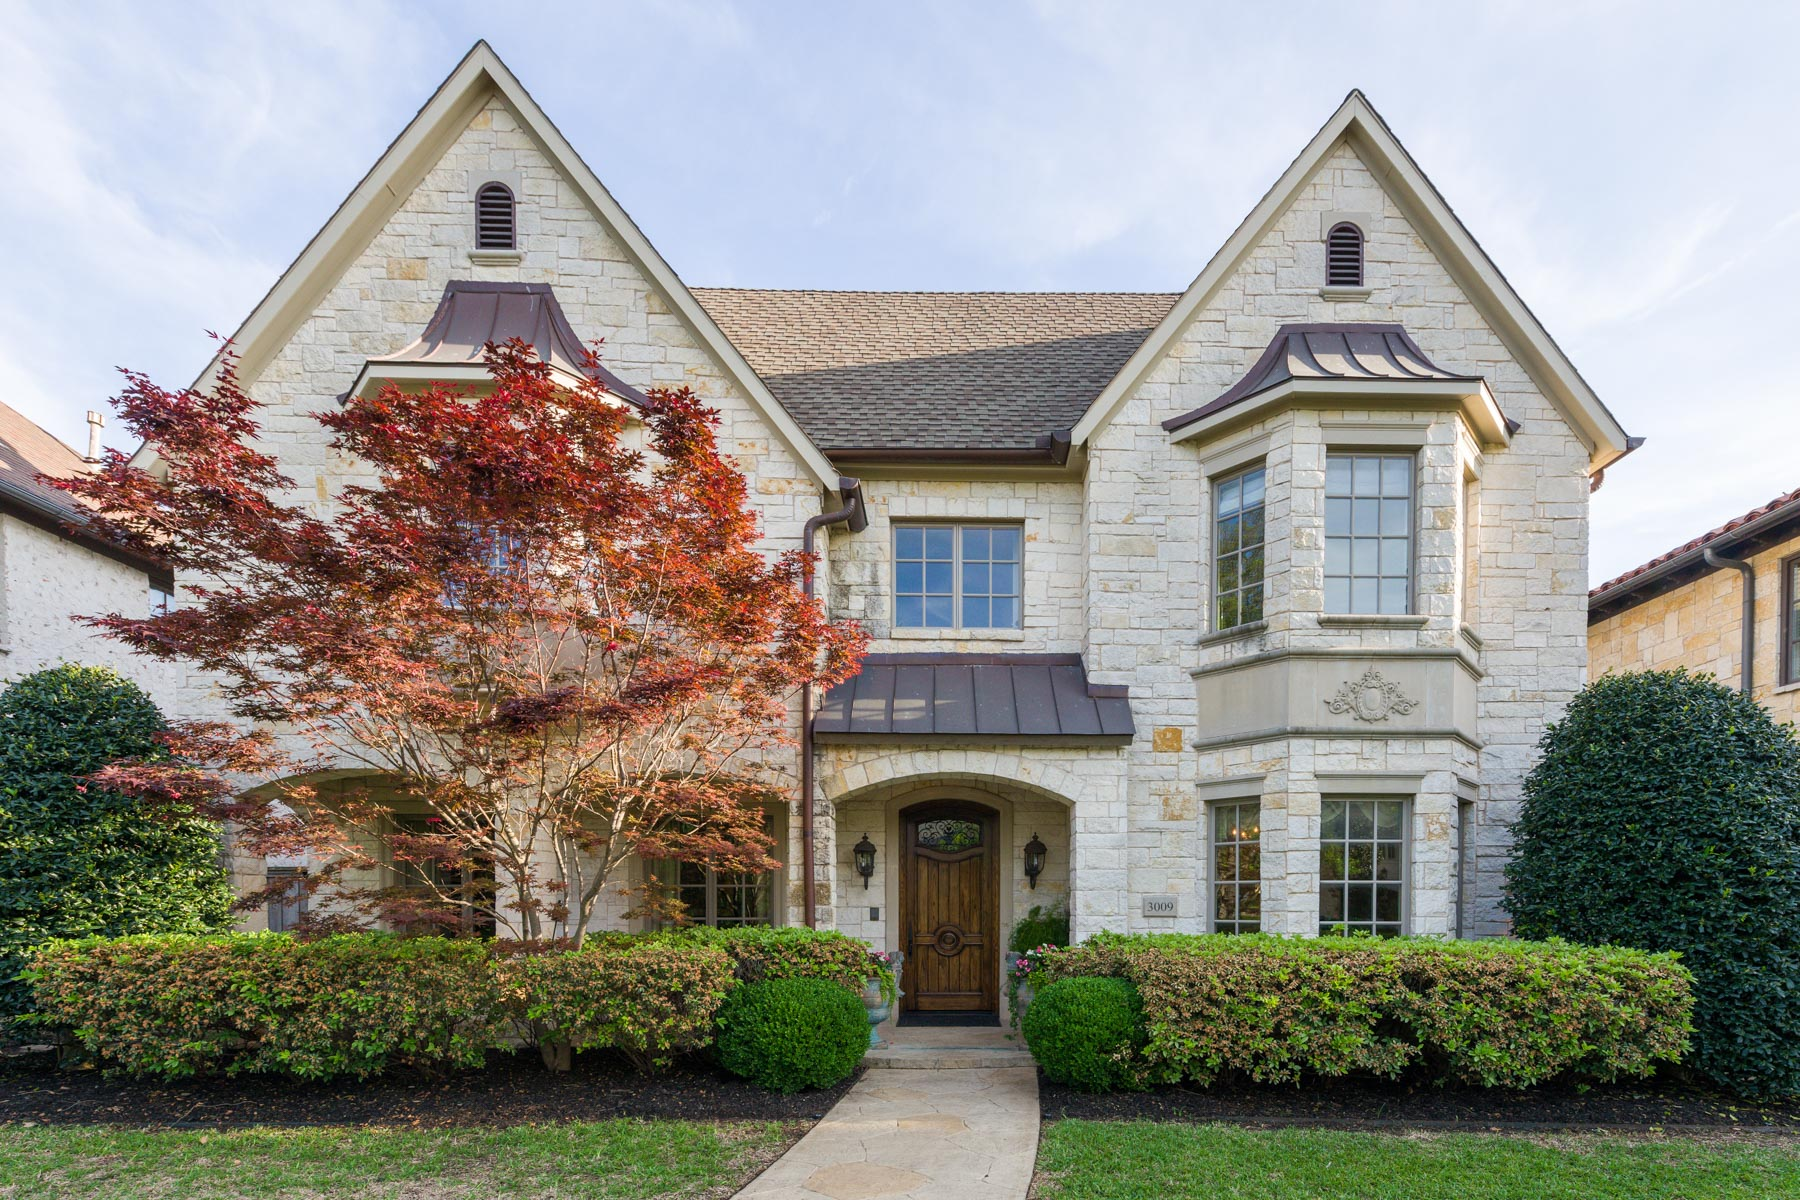 Single Family Home for Sale at Lovely Traditional in University Park 3009 Amherst Ave Dallas, Texas, 75225 United States